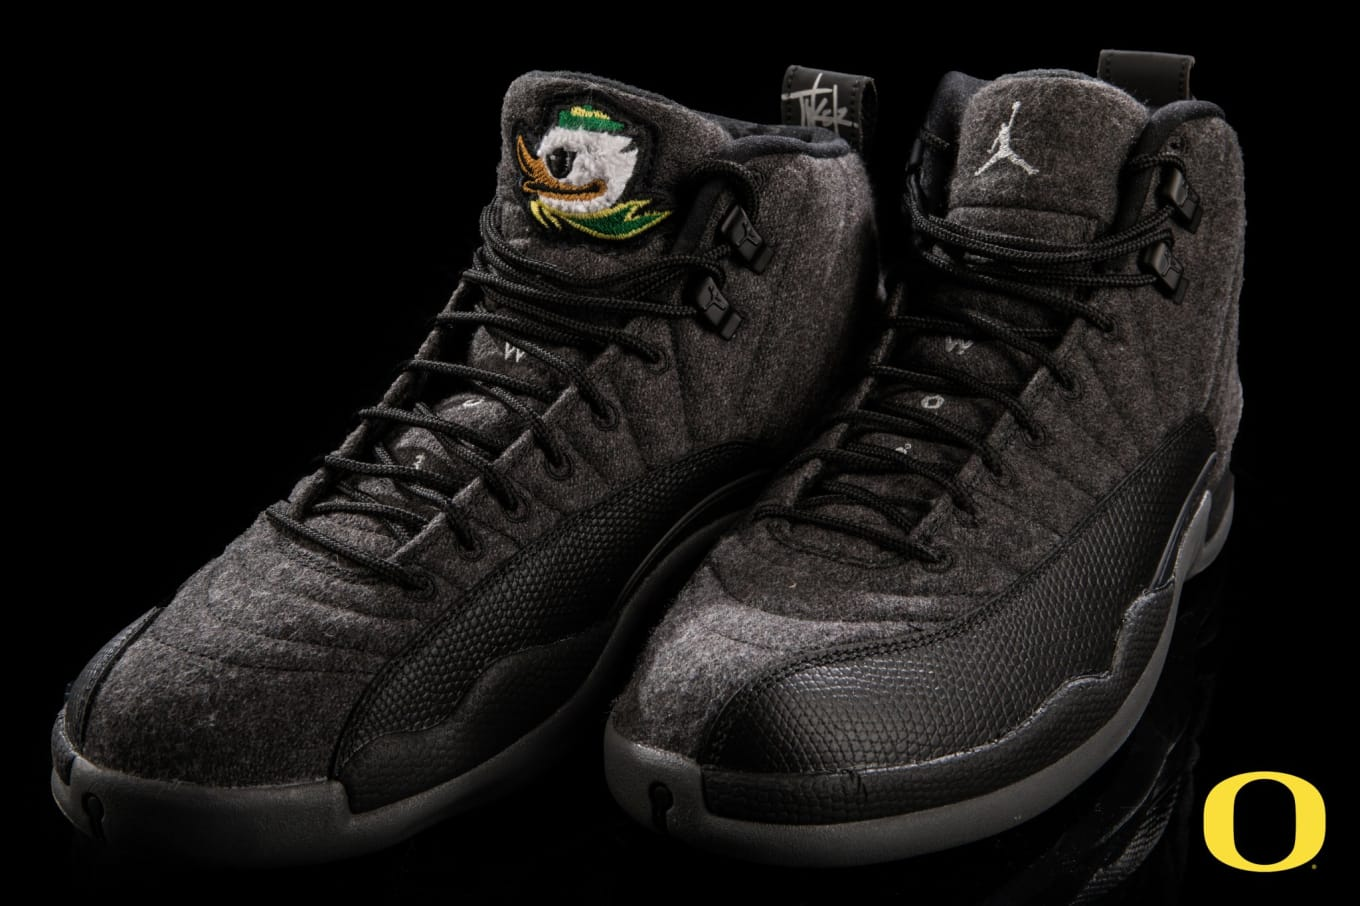 7b8dbbcfa36d Oregon Ducks Wool Air Jordan 12